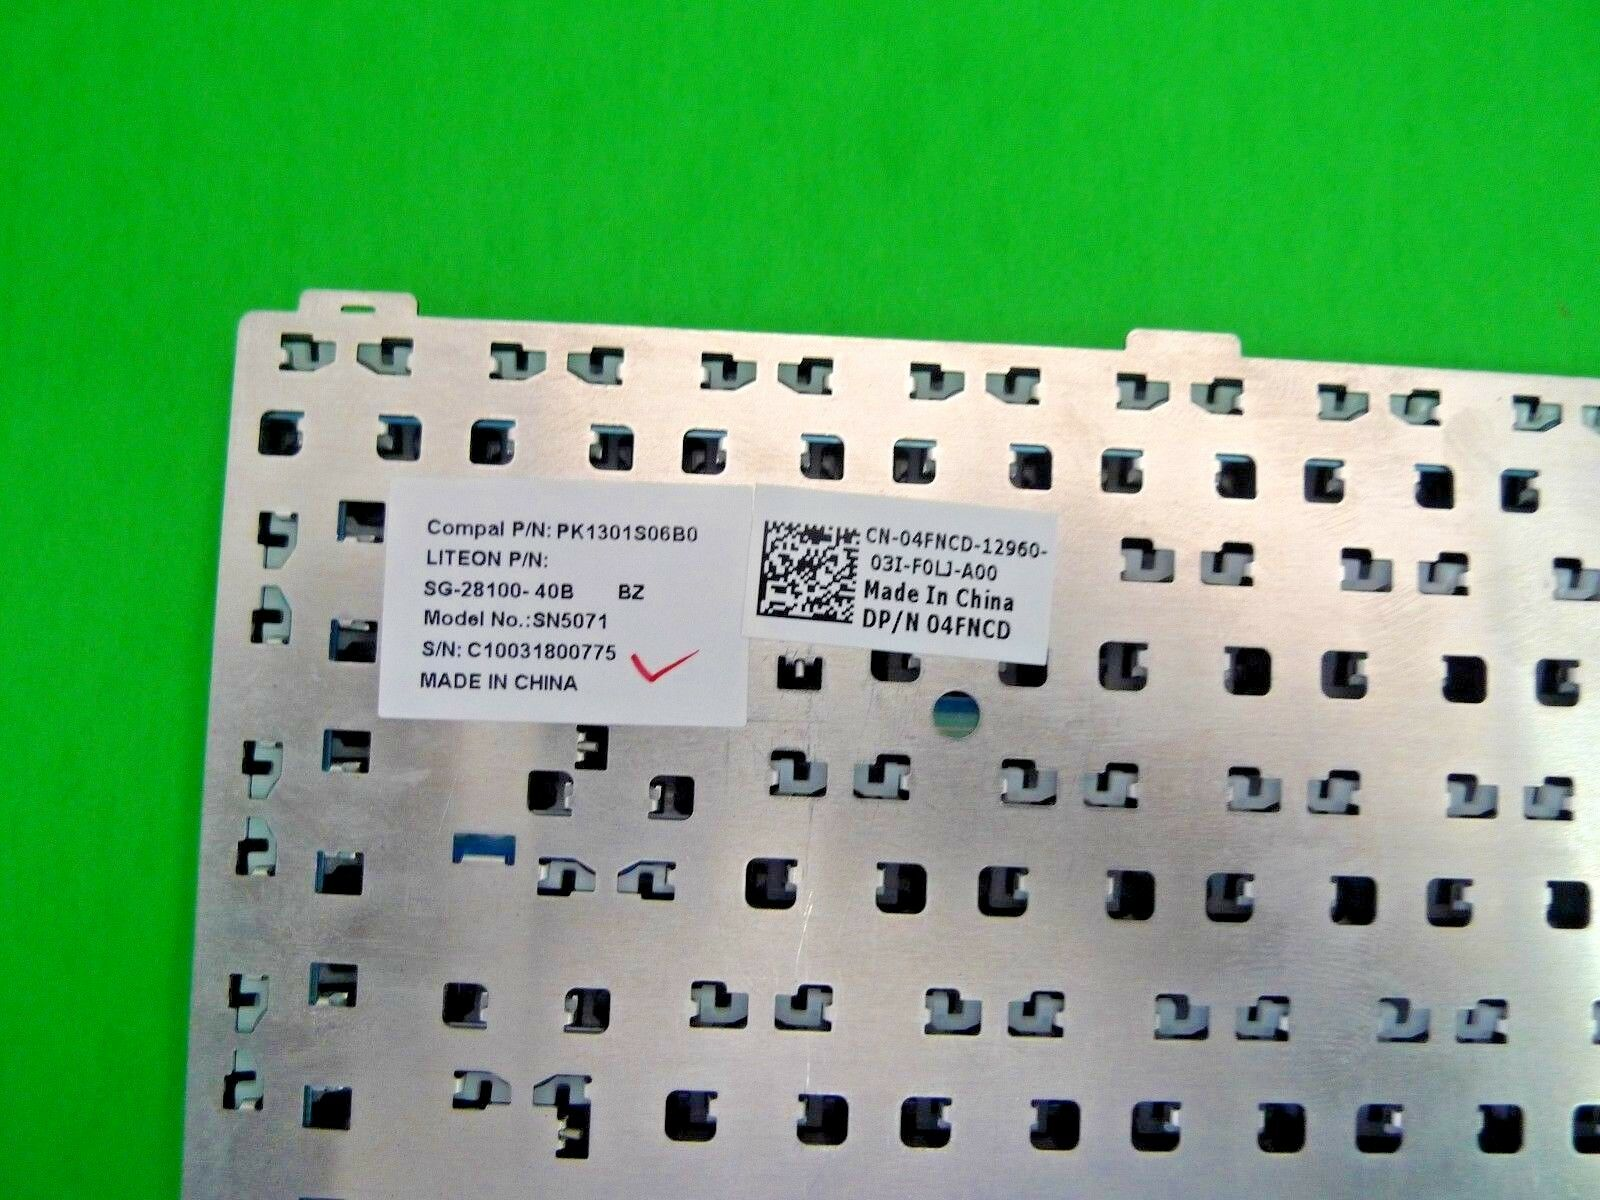 New Laptop Keyboard for DELL 1428 1427 FT02 1427 1425 Keyboard Replacement